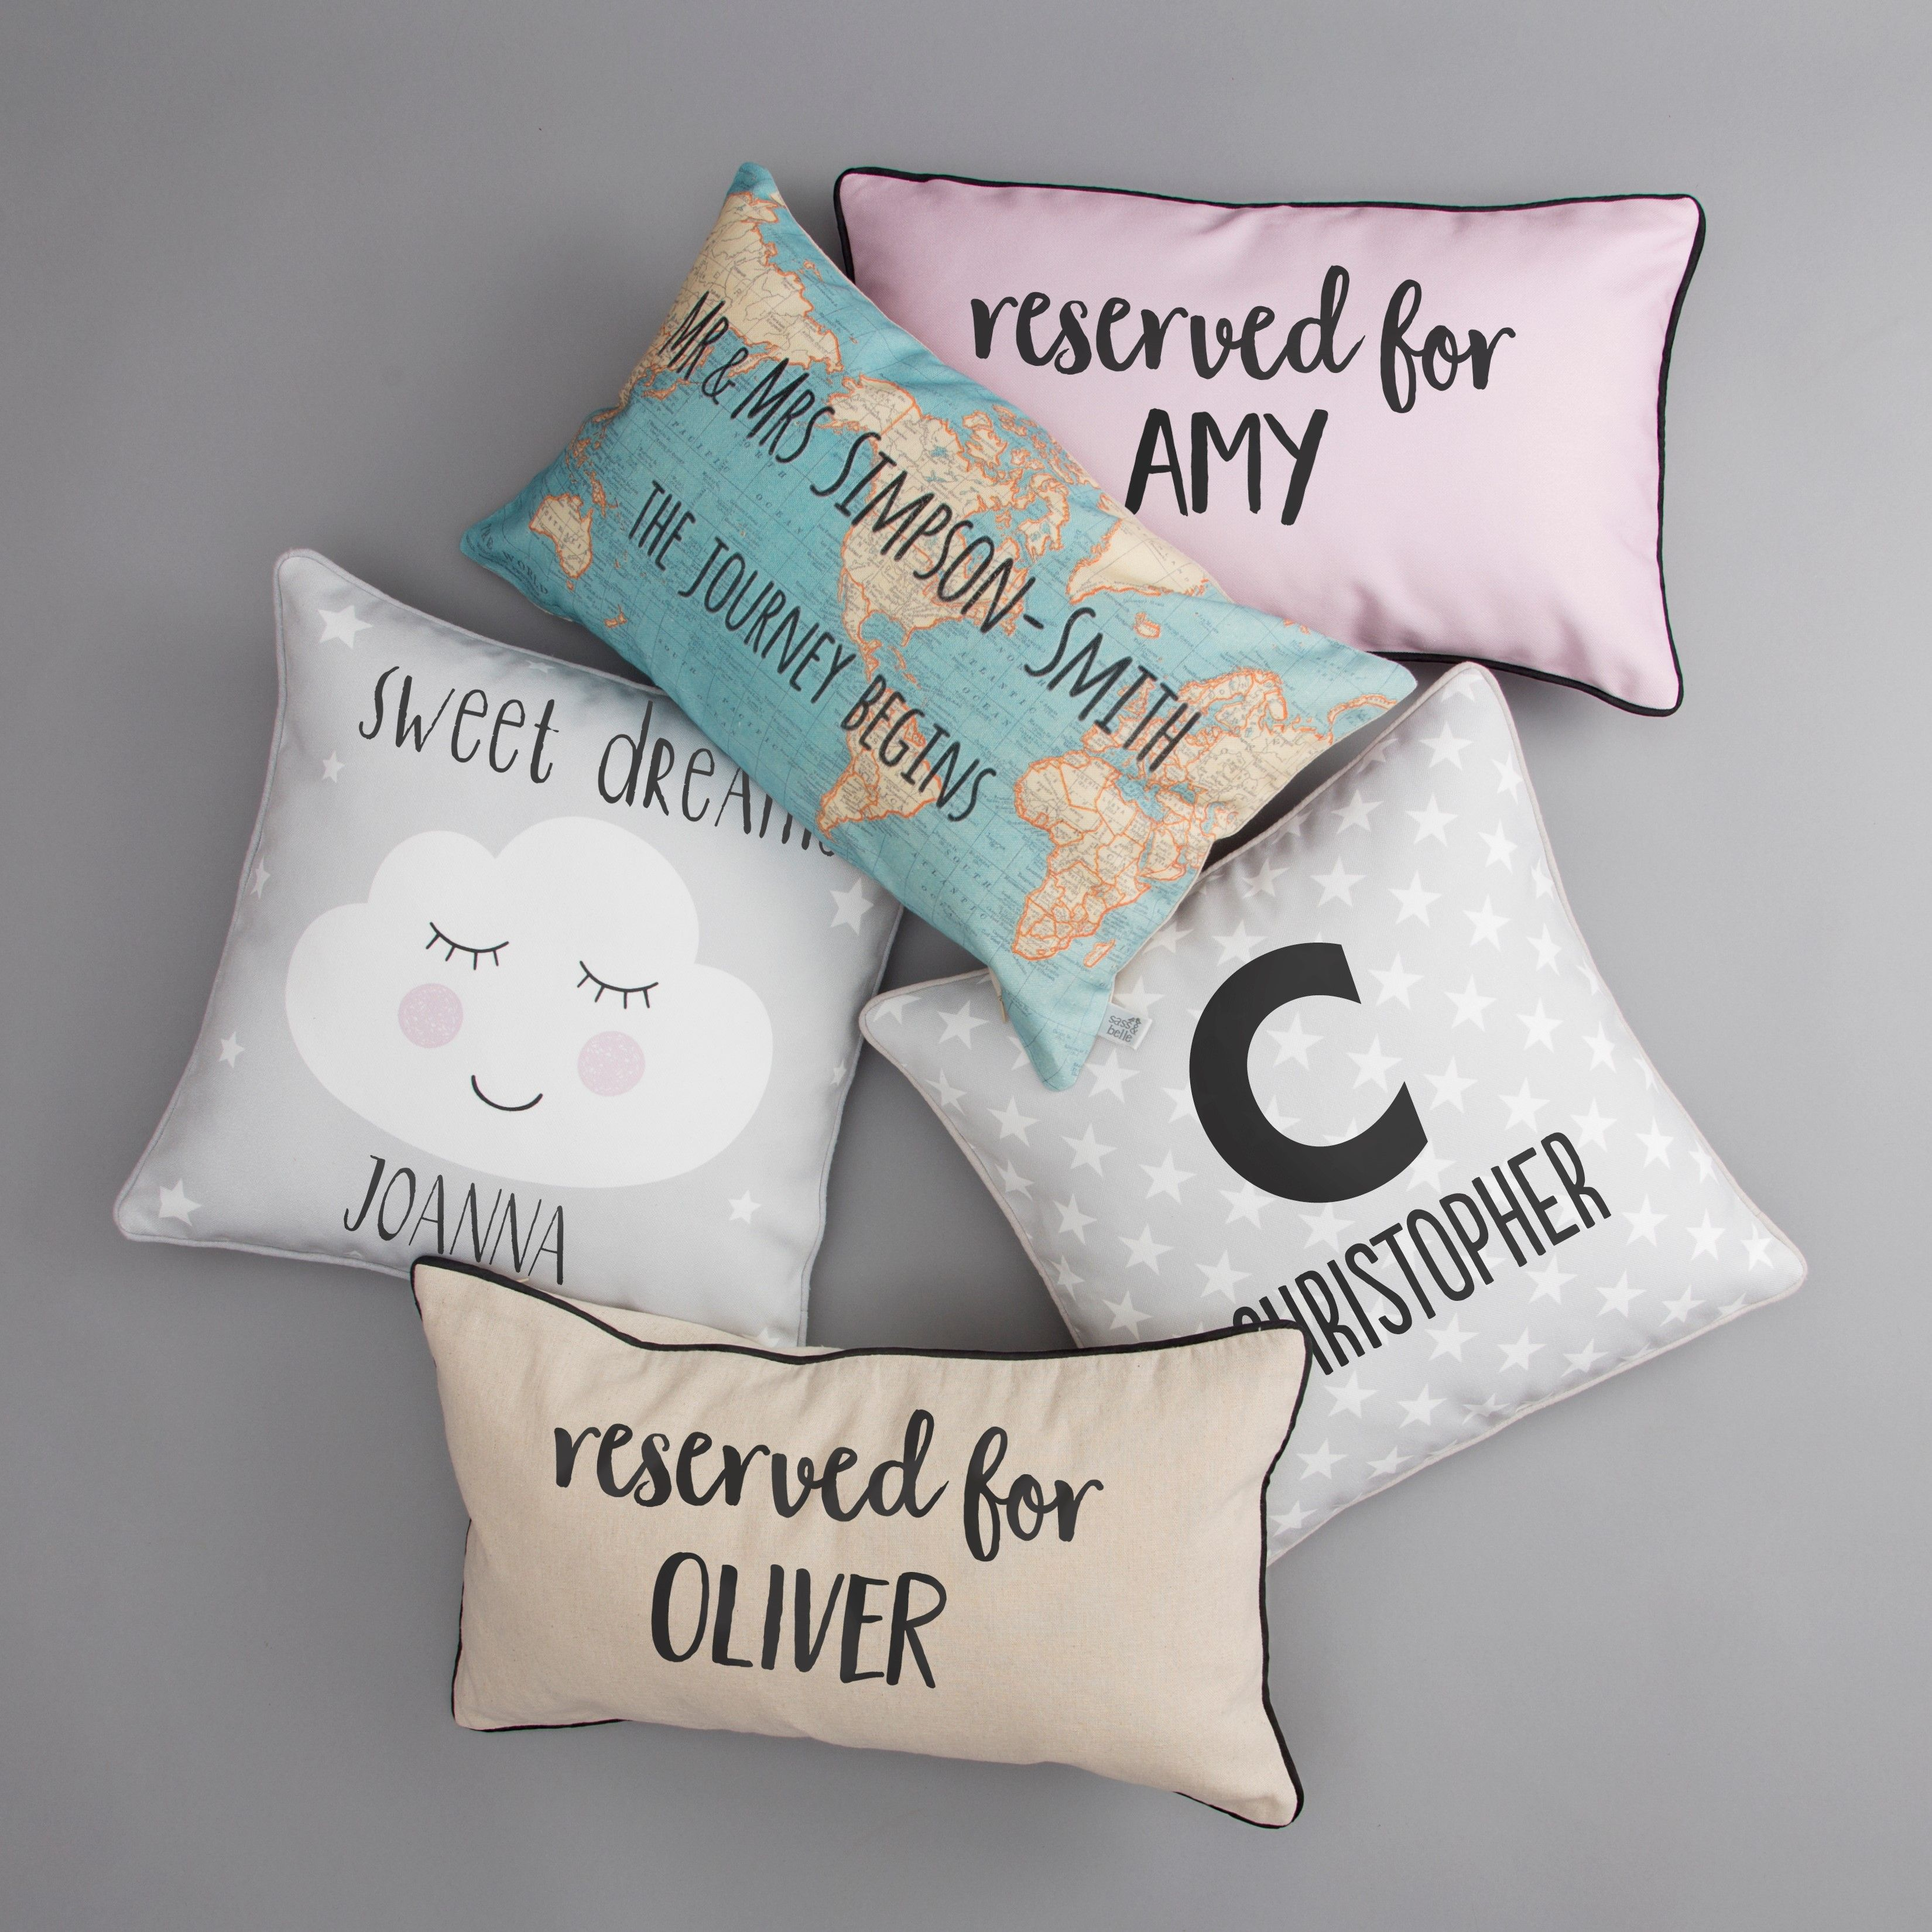 Sass Belle Personalised Gifts Everyone Needs Their